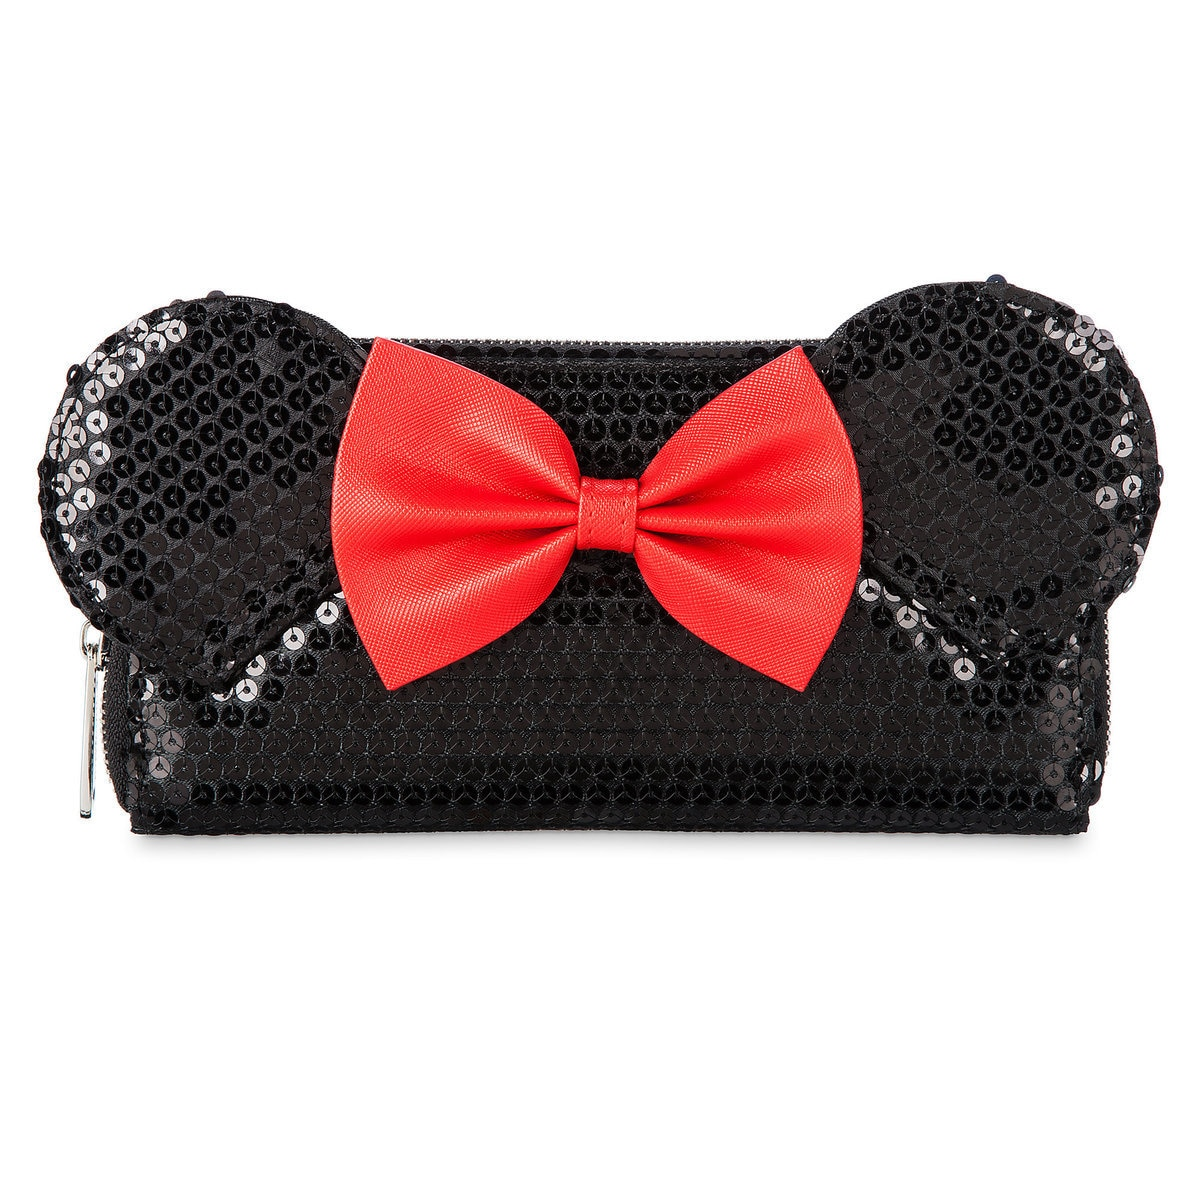 9eaad936f08 Product Image of Minnie Mouse Wallet by Loungefly - Black Sequined   1